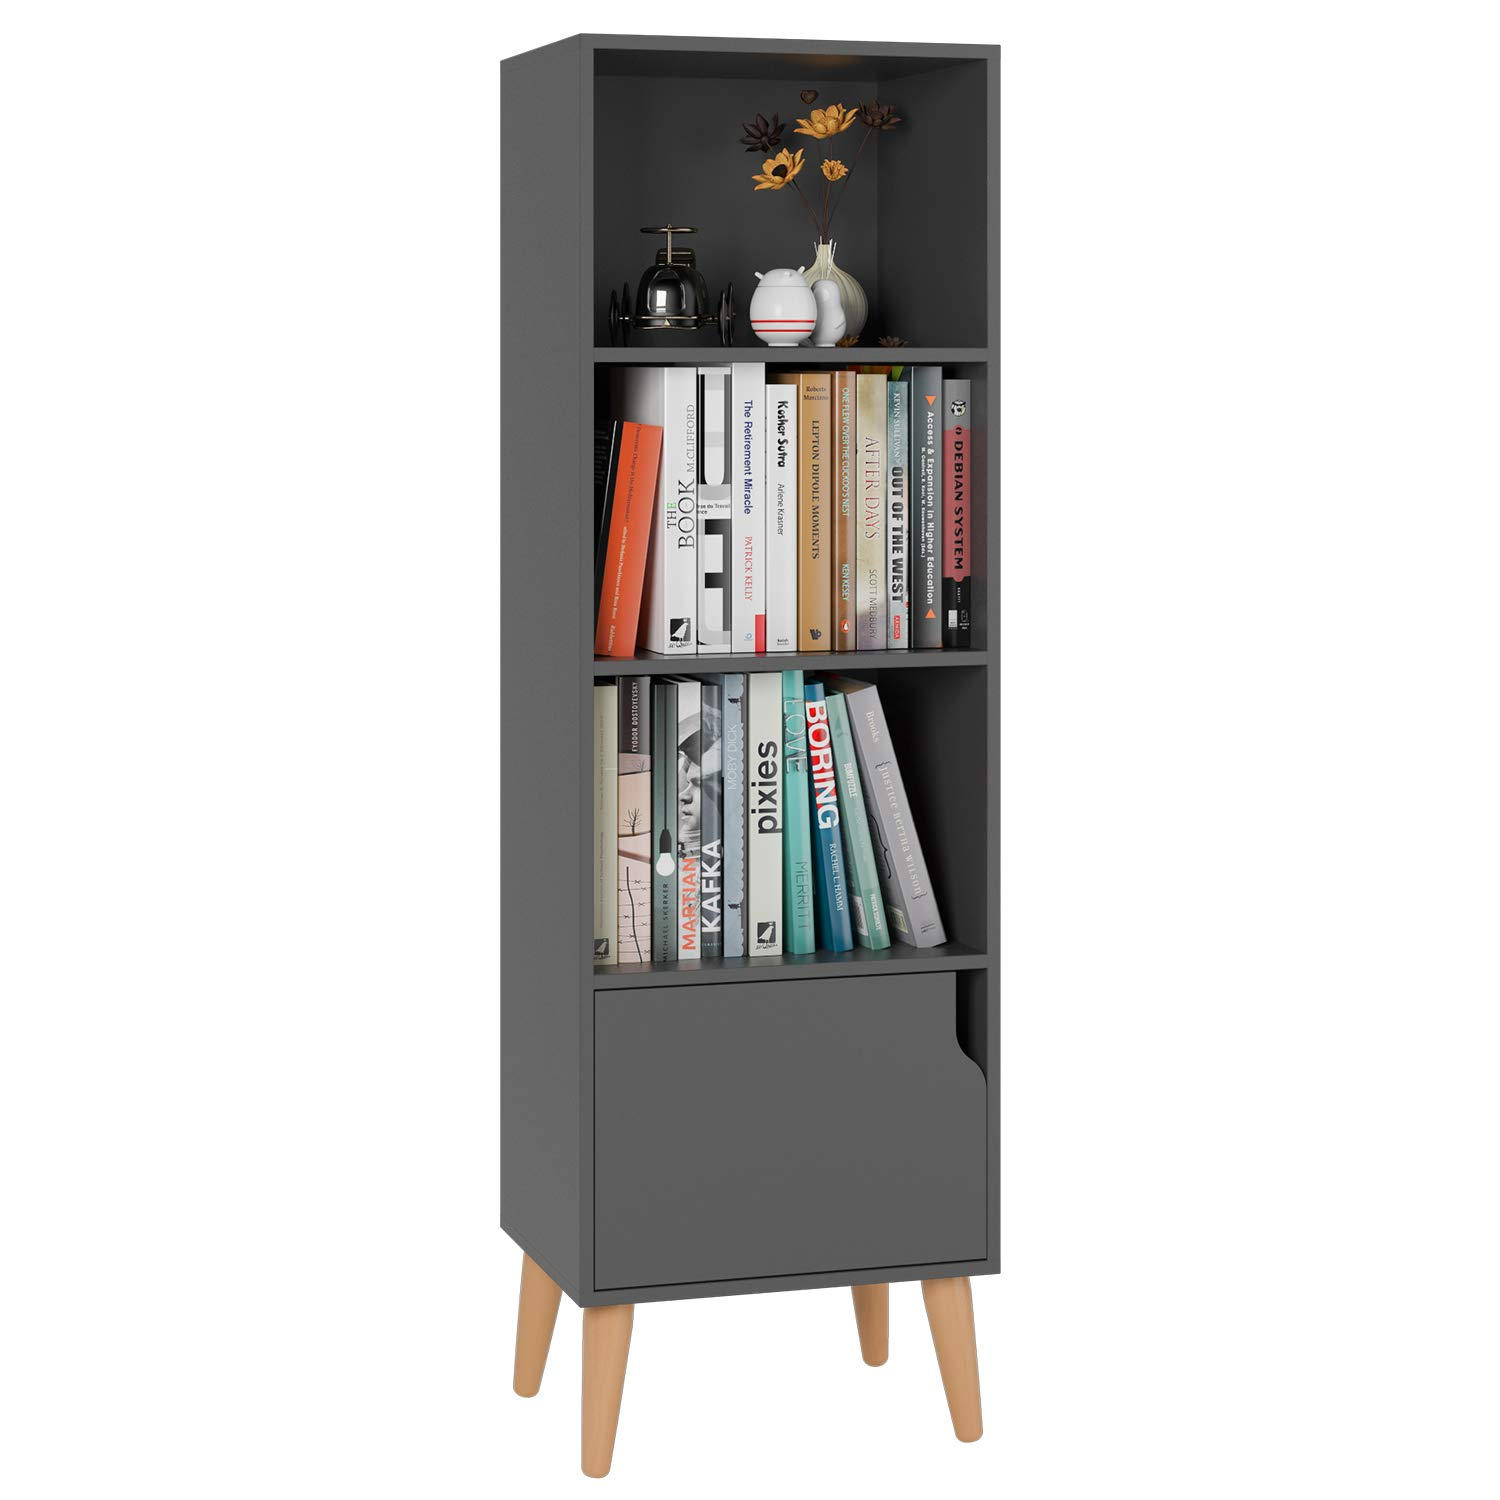 Homfa 4 Tier Floor Cabinet, Free Standing Wooden Display Bookshelf with 4 Legs and 1 Door, Side Corner Storage Cabinet Decor Furniture for Home Office, Gray by Homfa (Image #1)